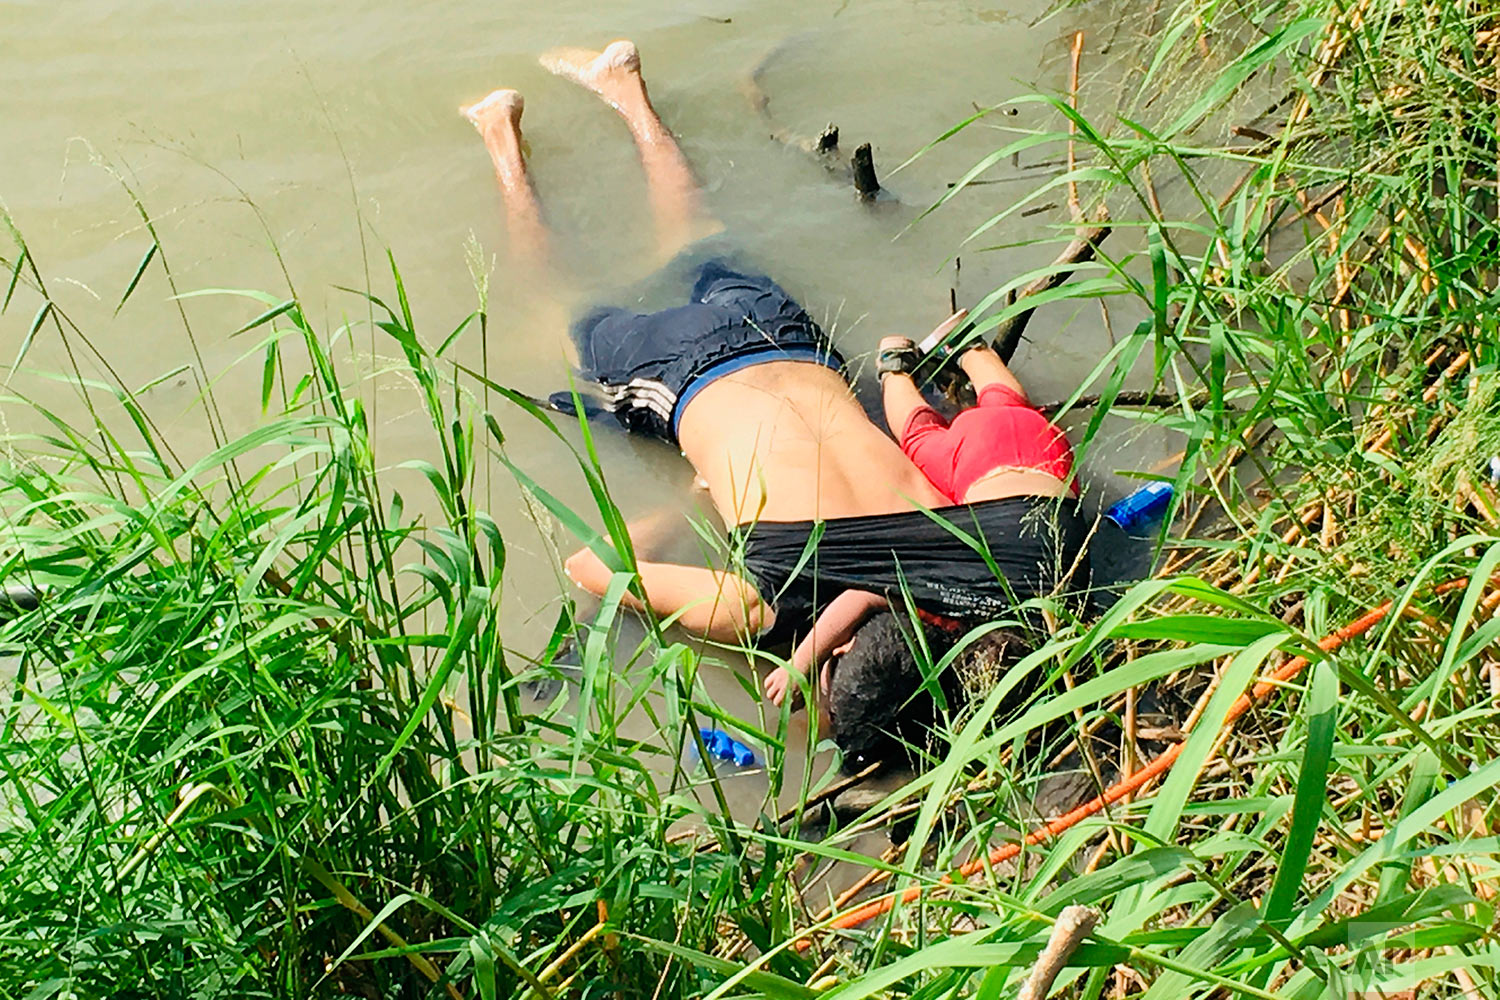 The bodies of Salvadoran migrant Oscar Alberto Martínez Ramírez and his nearly 2-year-old daughter Valeria lie on the bank of the Rio Grande in Matamoros, Mexico, Monday, June 24, 2019, after they drowned trying to cross the river to Brownsville, Texas. (AP Photo/Julia Le Duc)